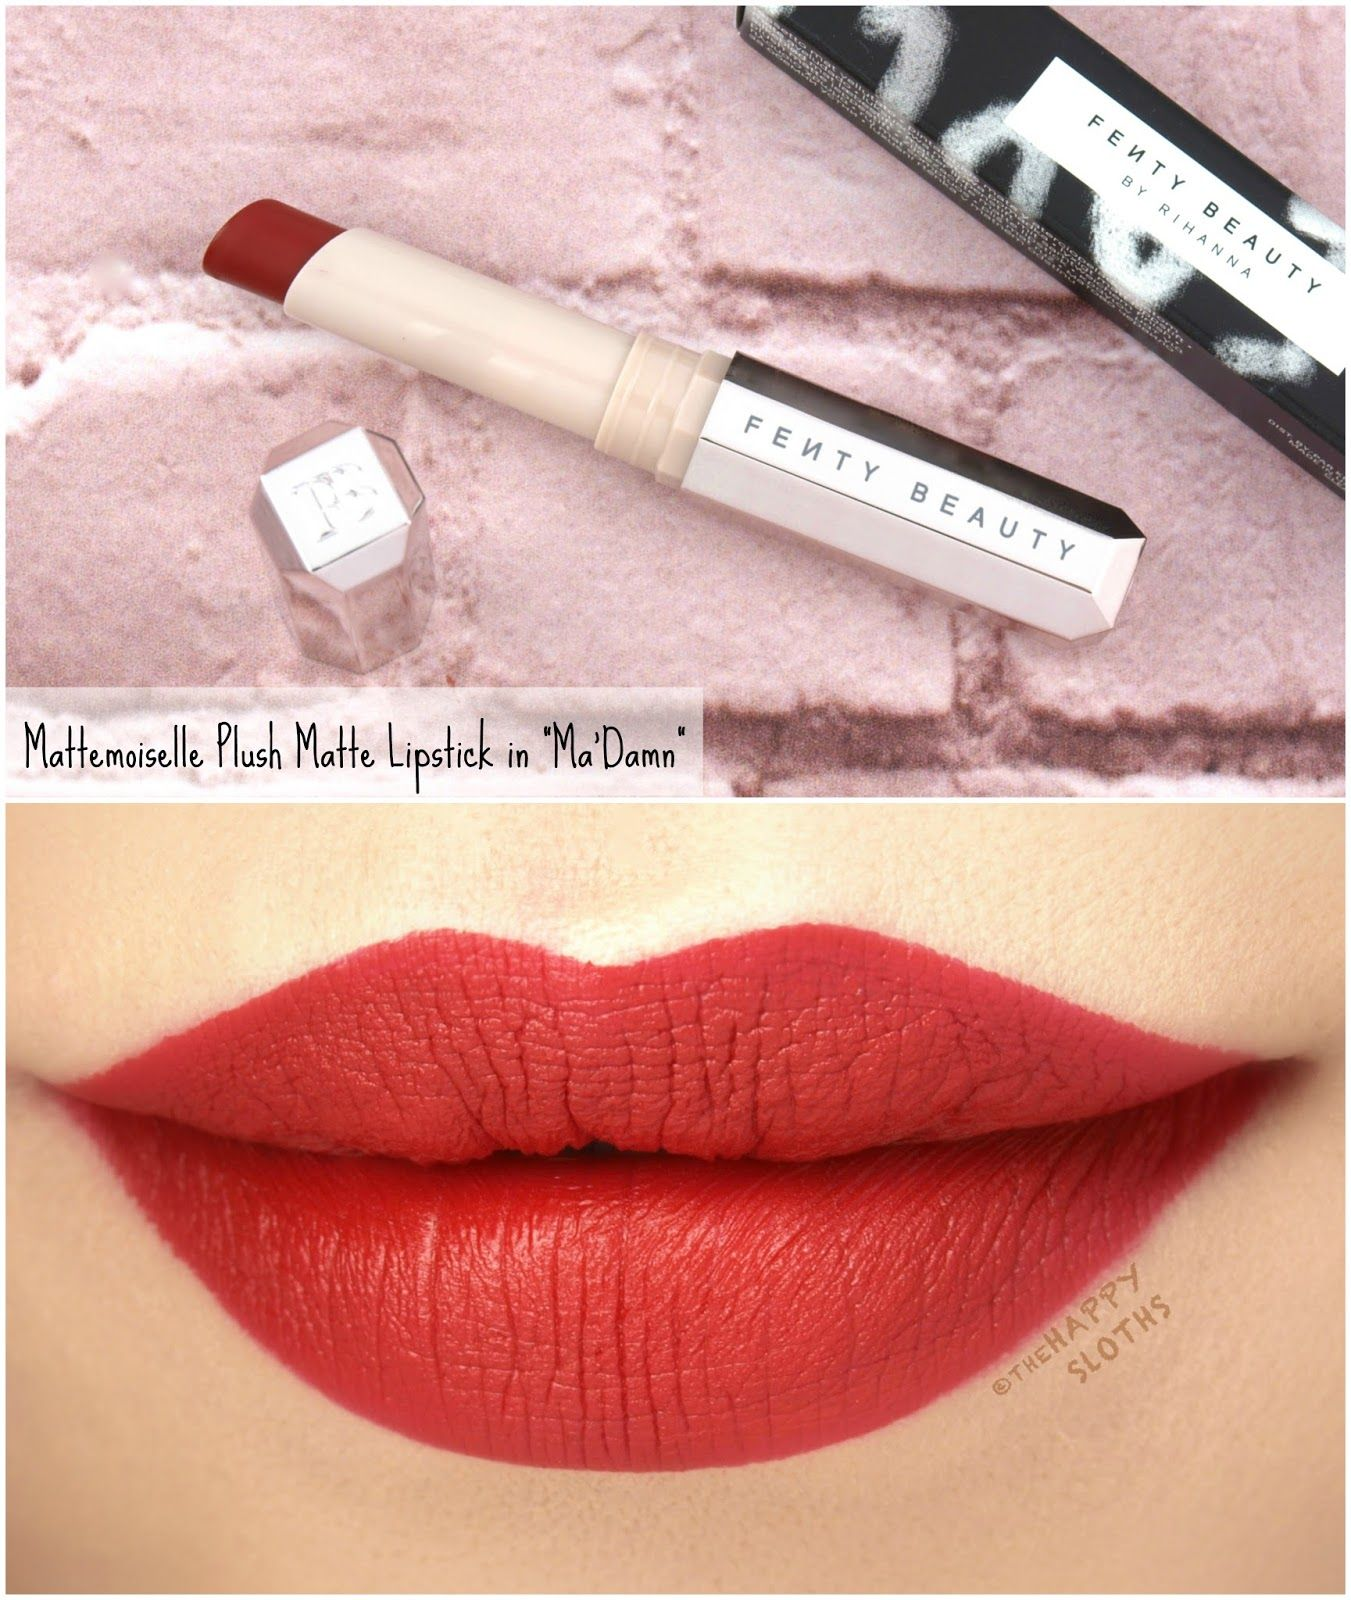 Fenty Beauty By Rihanna Mattemoiselle Plush Matte Lipstick Review And Swatches Lip Colors Fenty Beauty Matte Lipstick